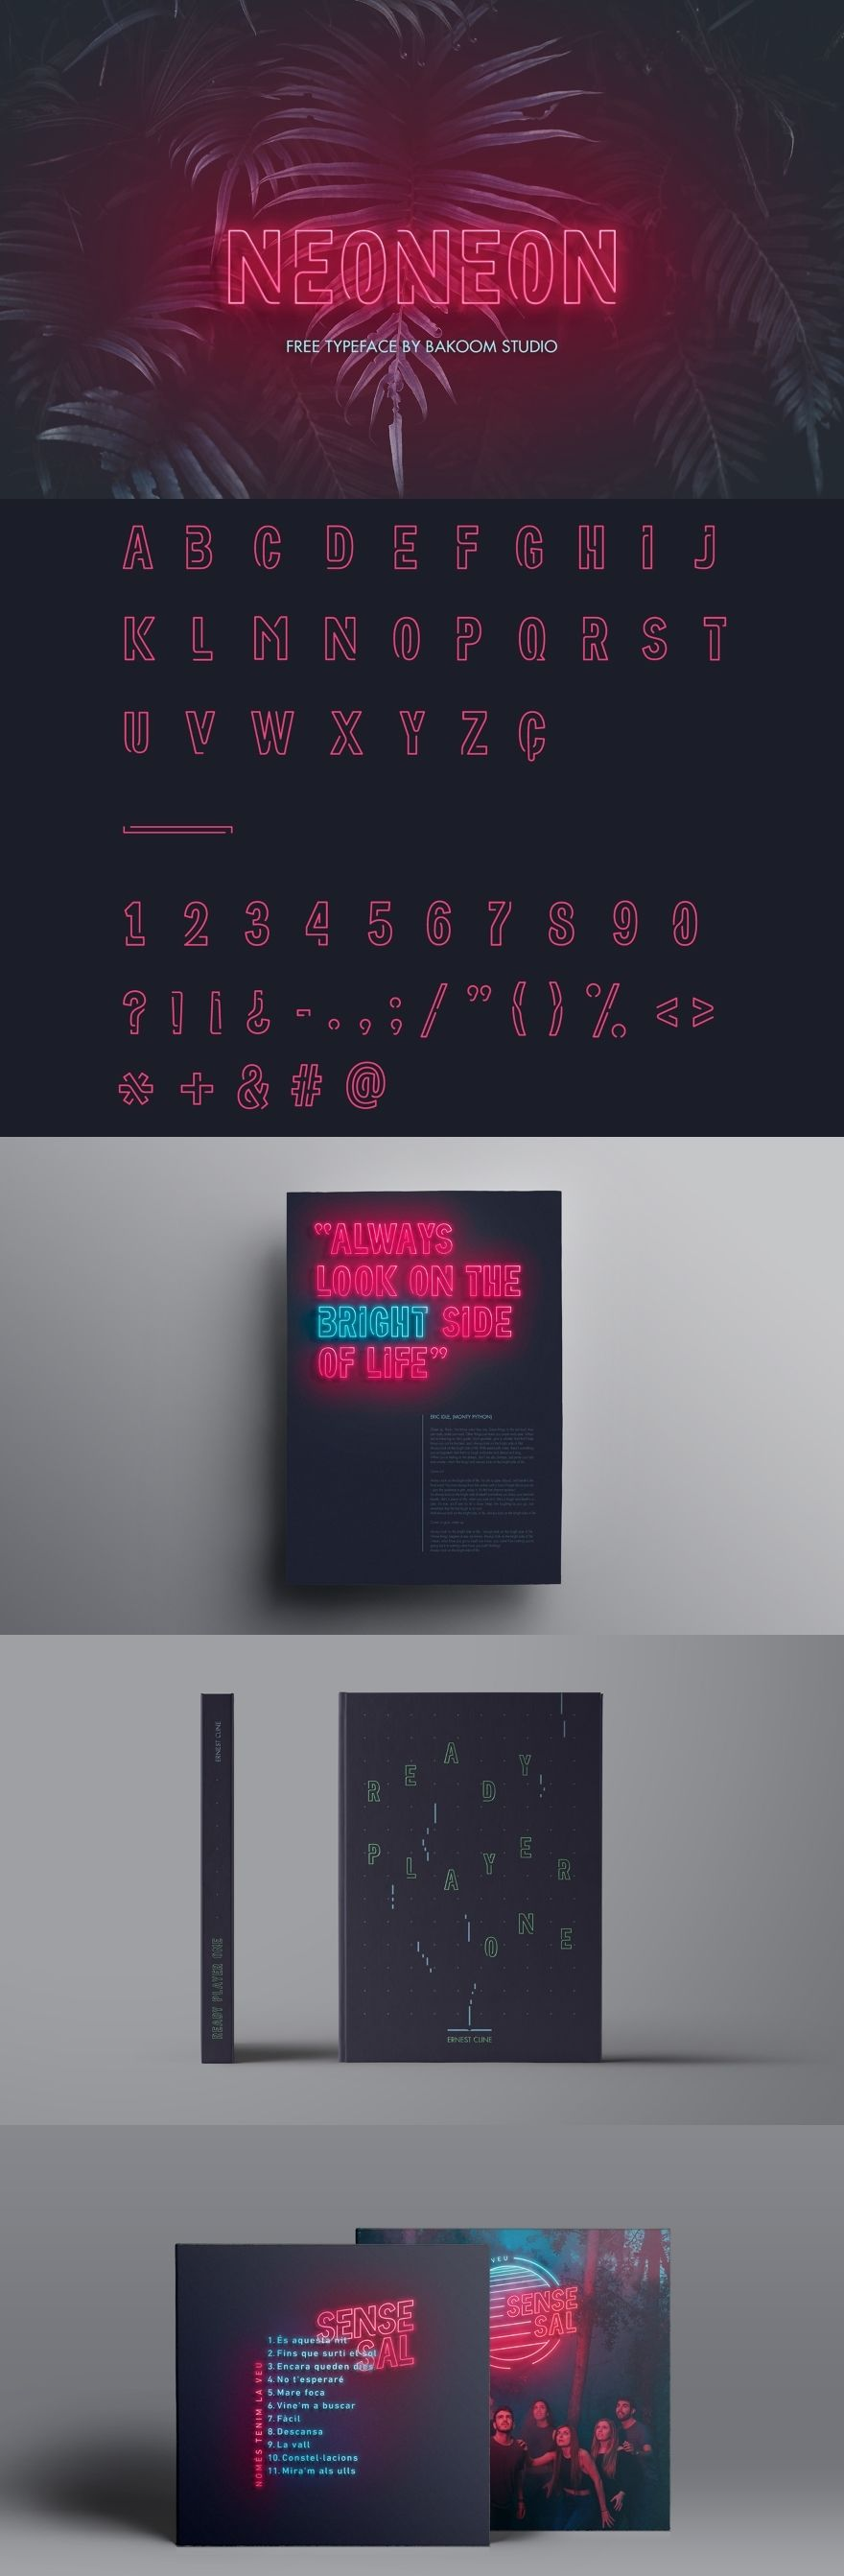 Neoneon is a free typeface meant to reproduce the 80 s style of